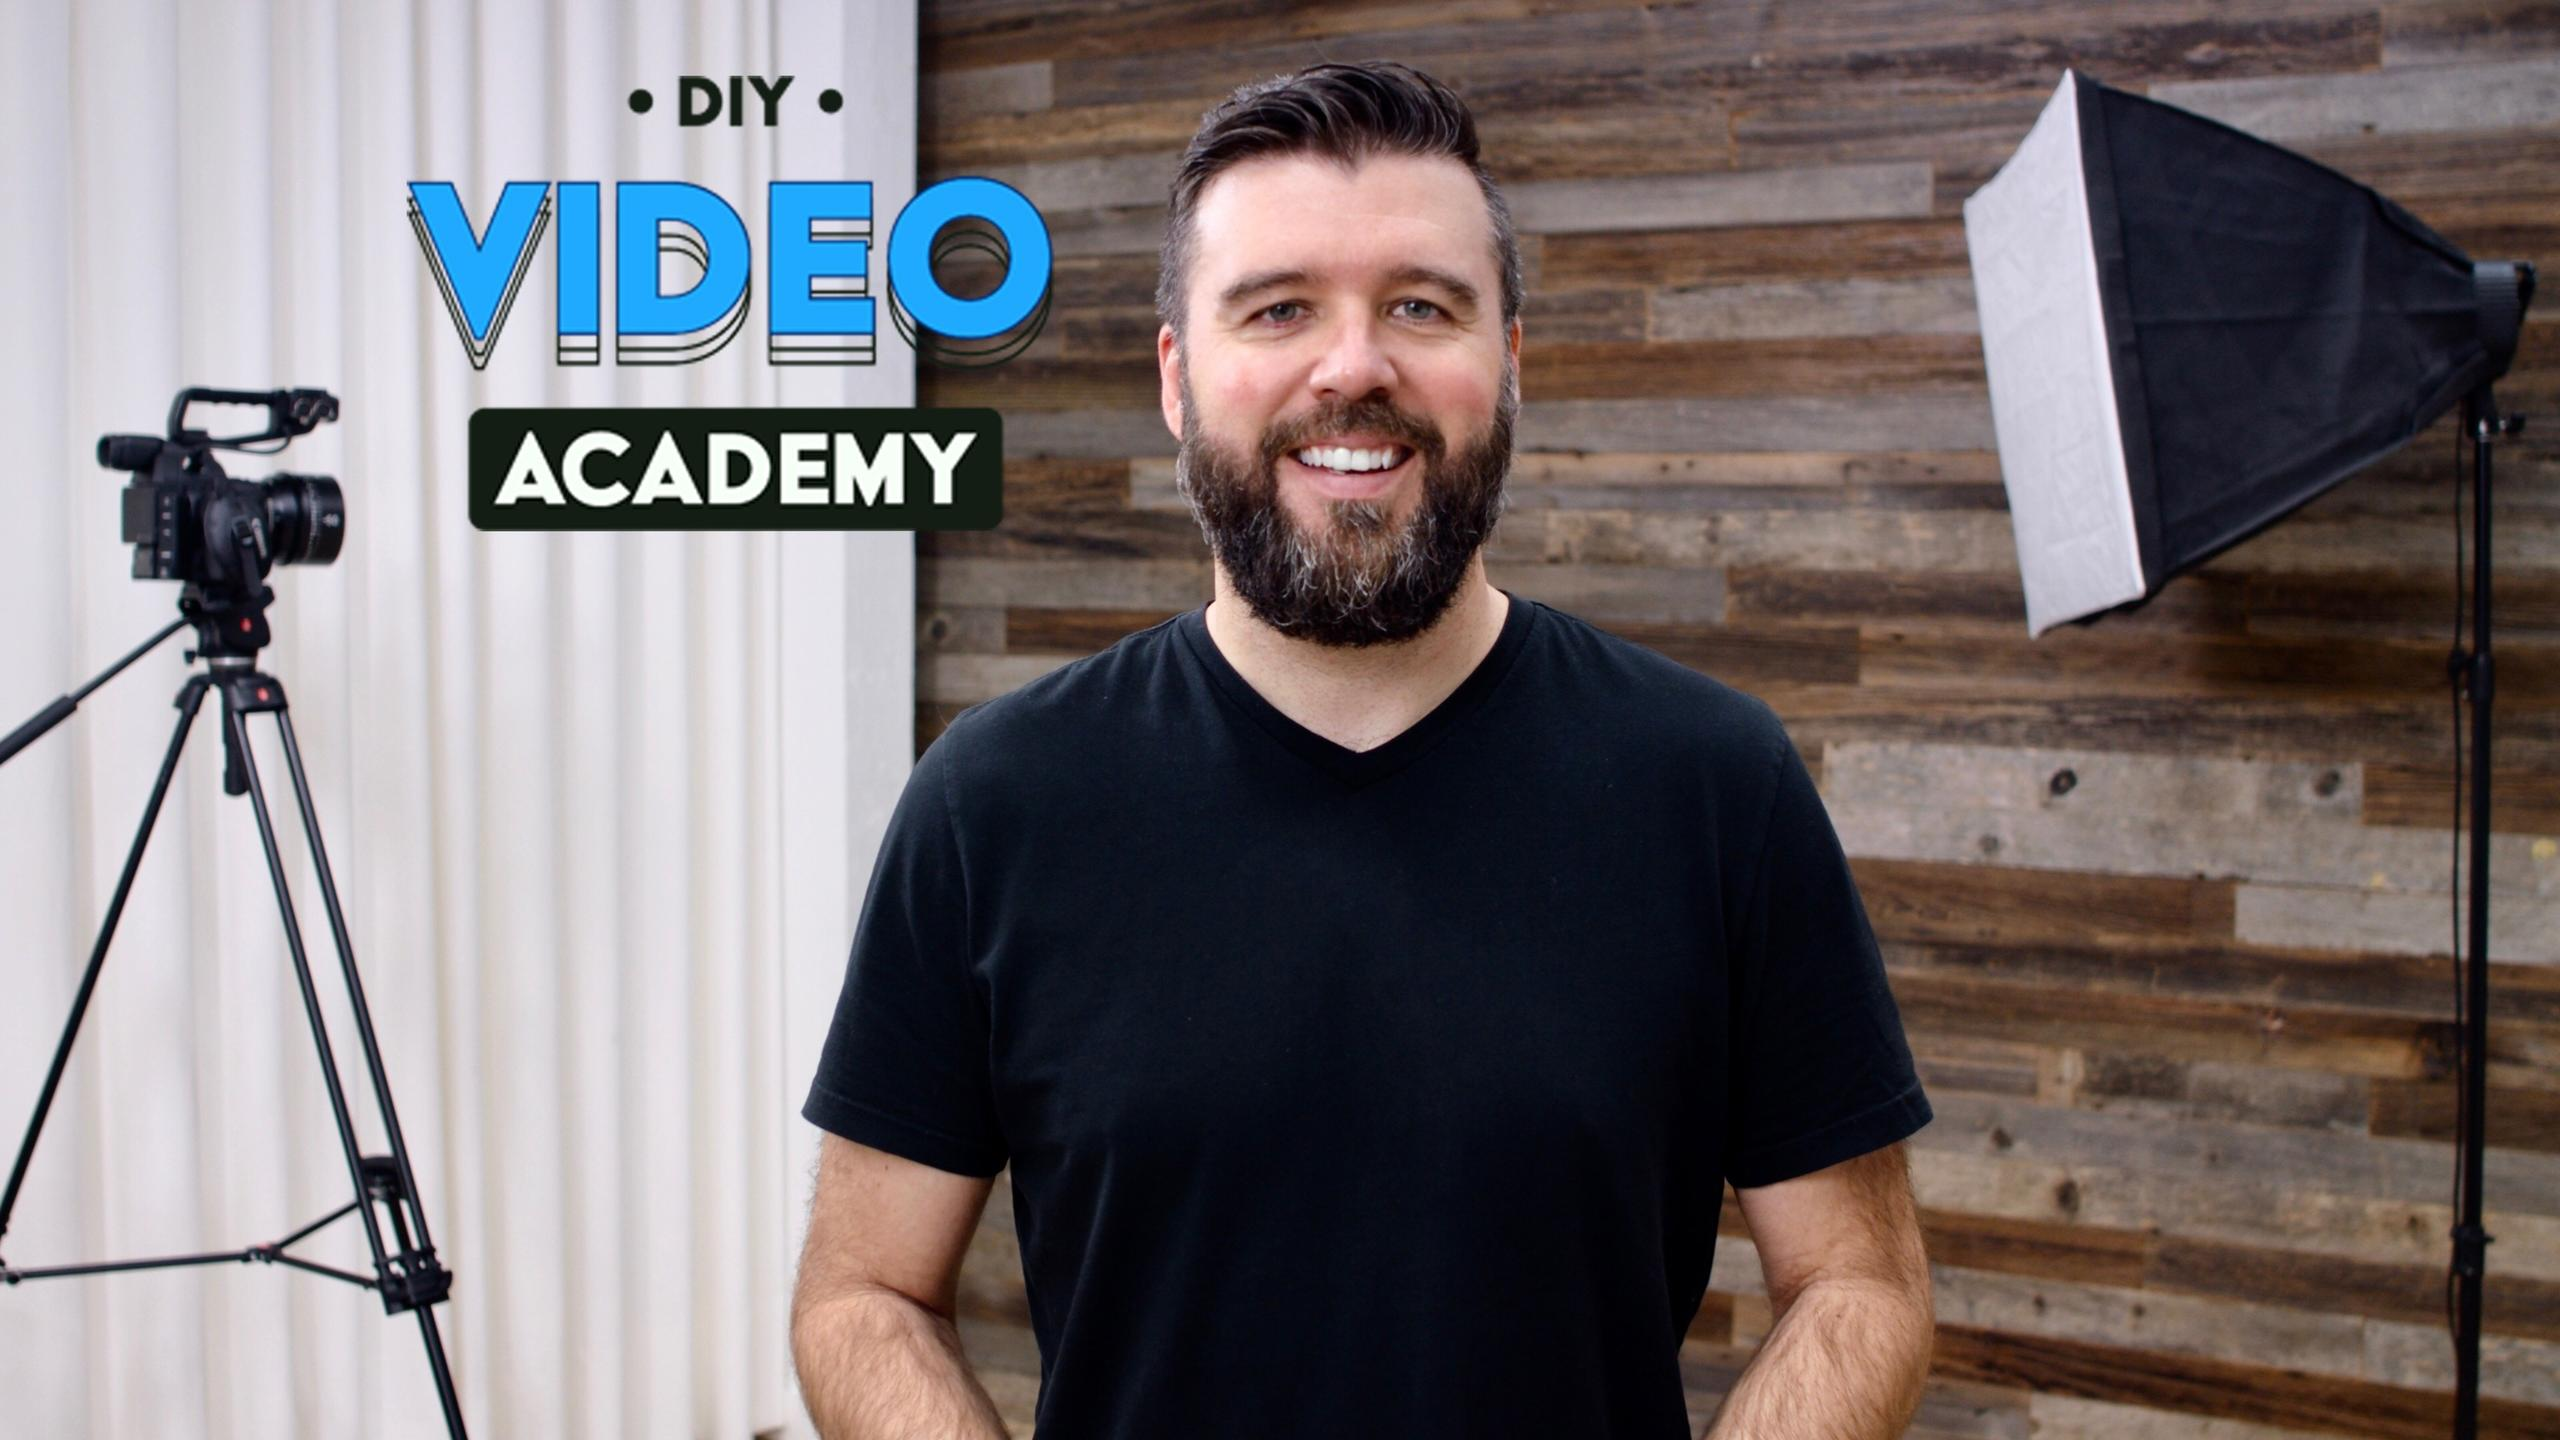 DIY Video Academy